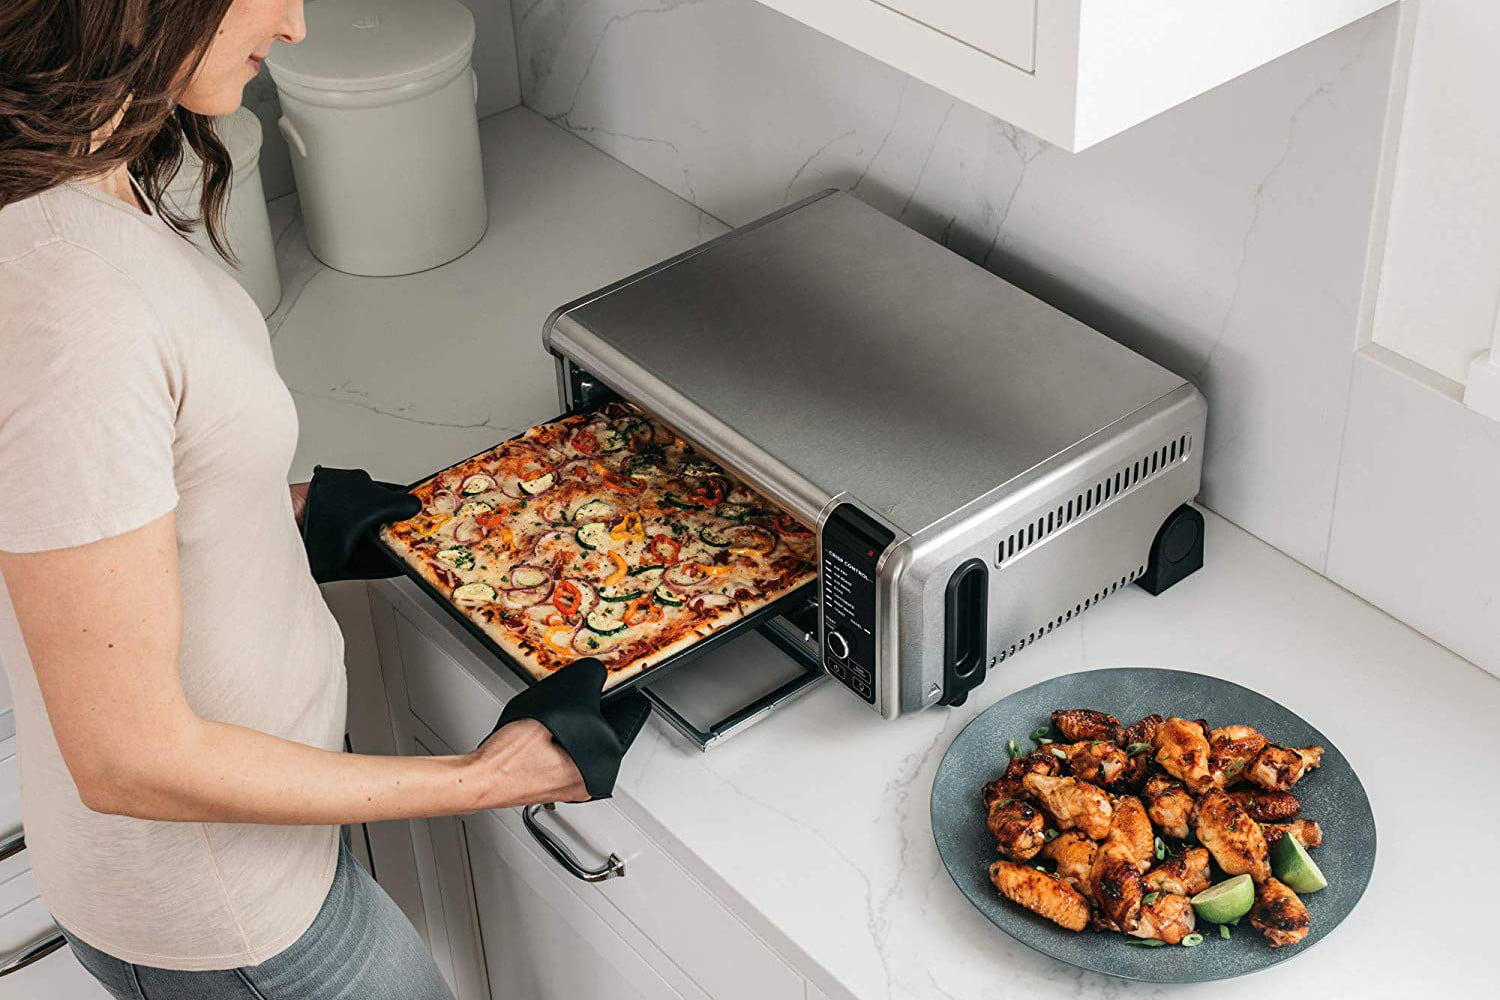 Best Ninja Foodi deals on cookers, air fryers, and grills for January 2020